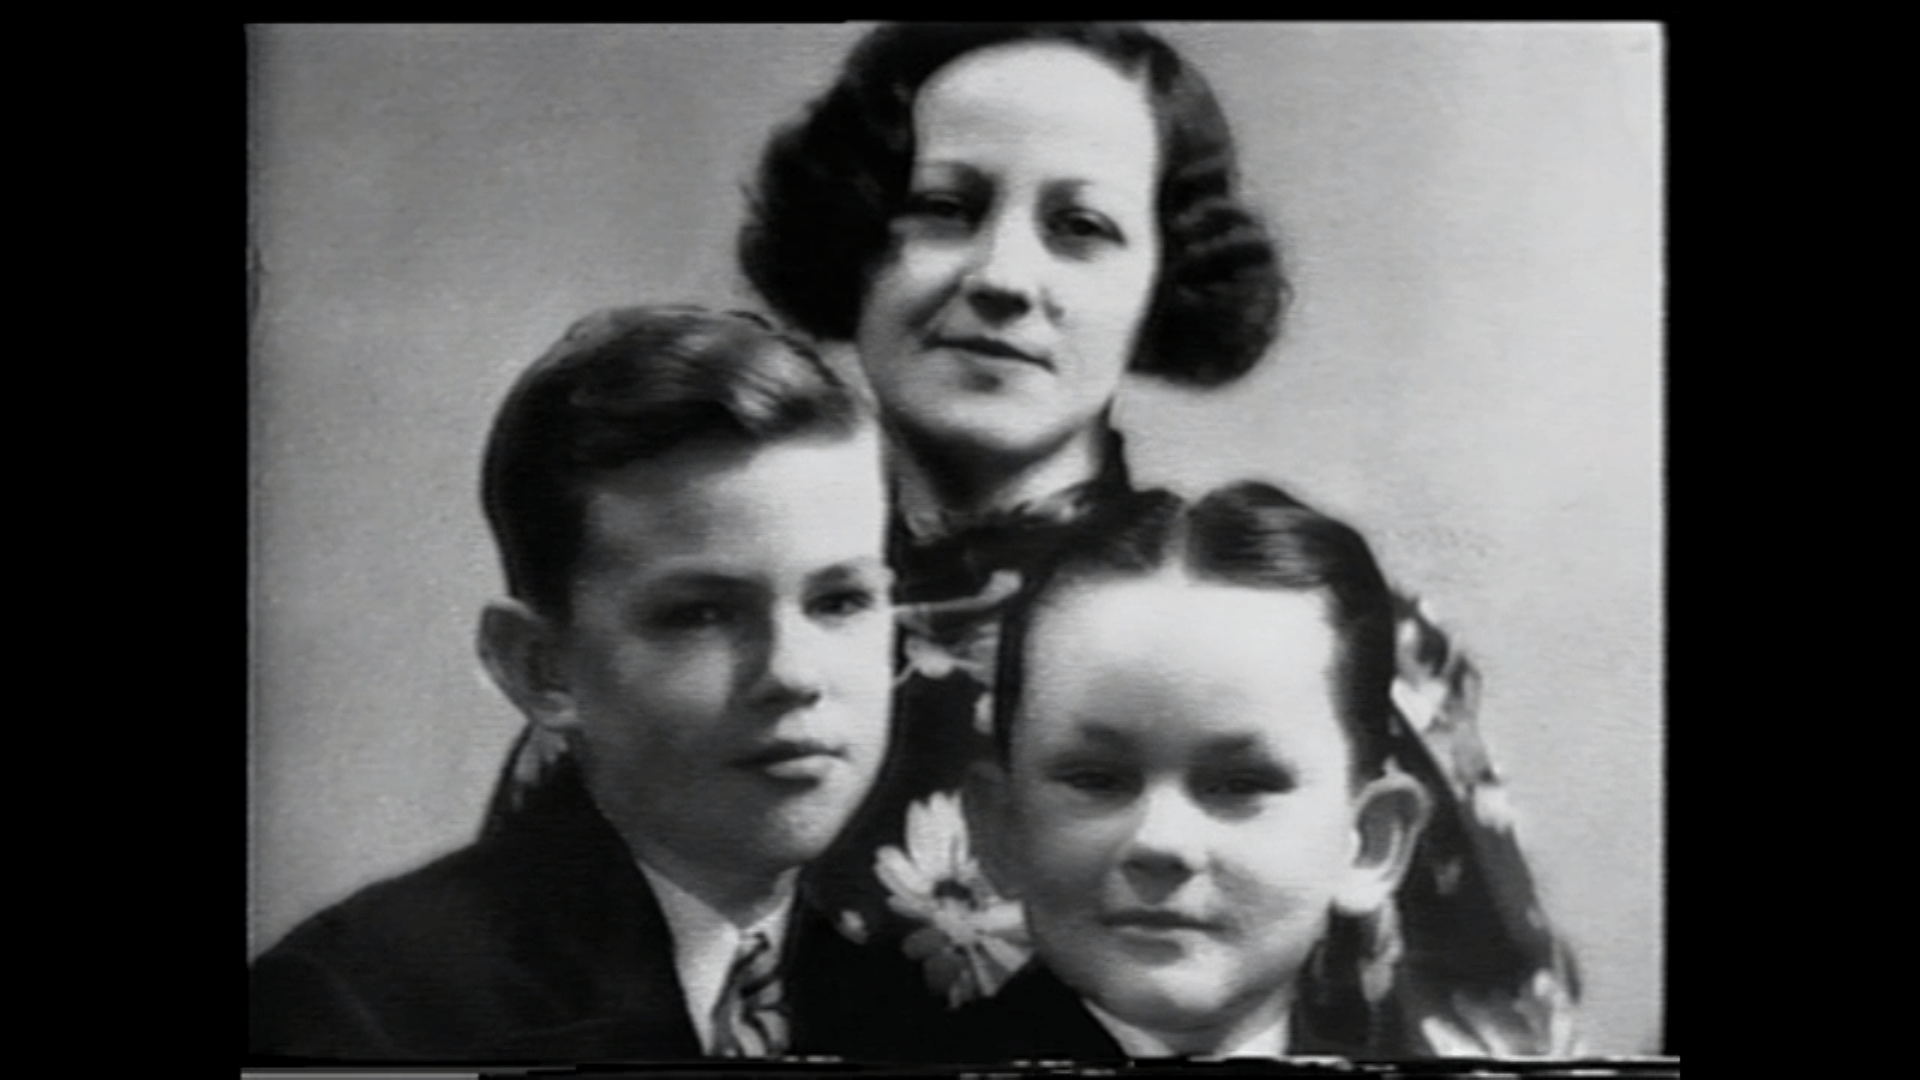 Bob Crane's first wife and two of their children.